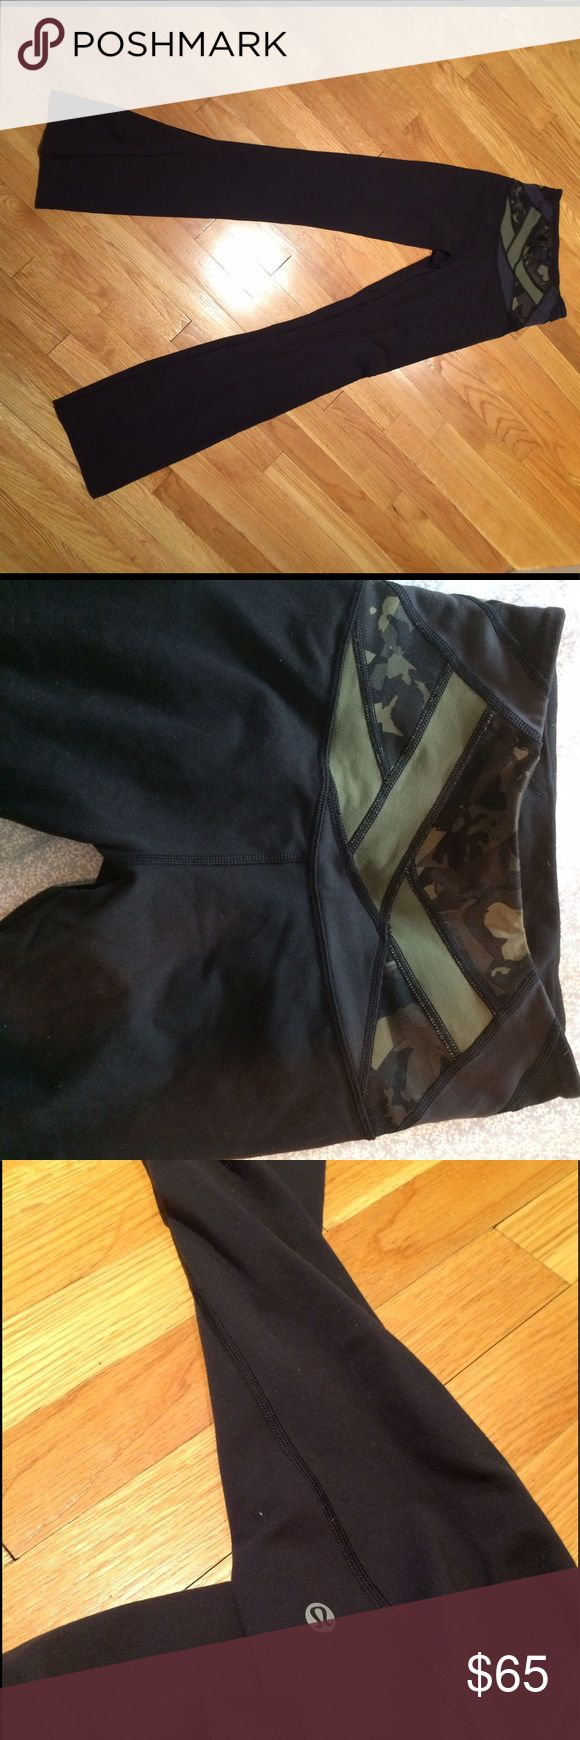 "lulu lemon yoga pants Size two tall yoga pants that have been hemmed to fit the ""regular"" height size. Gently used with a camo waistline! Super comfortable! lululemon athletica Pants Leggings"